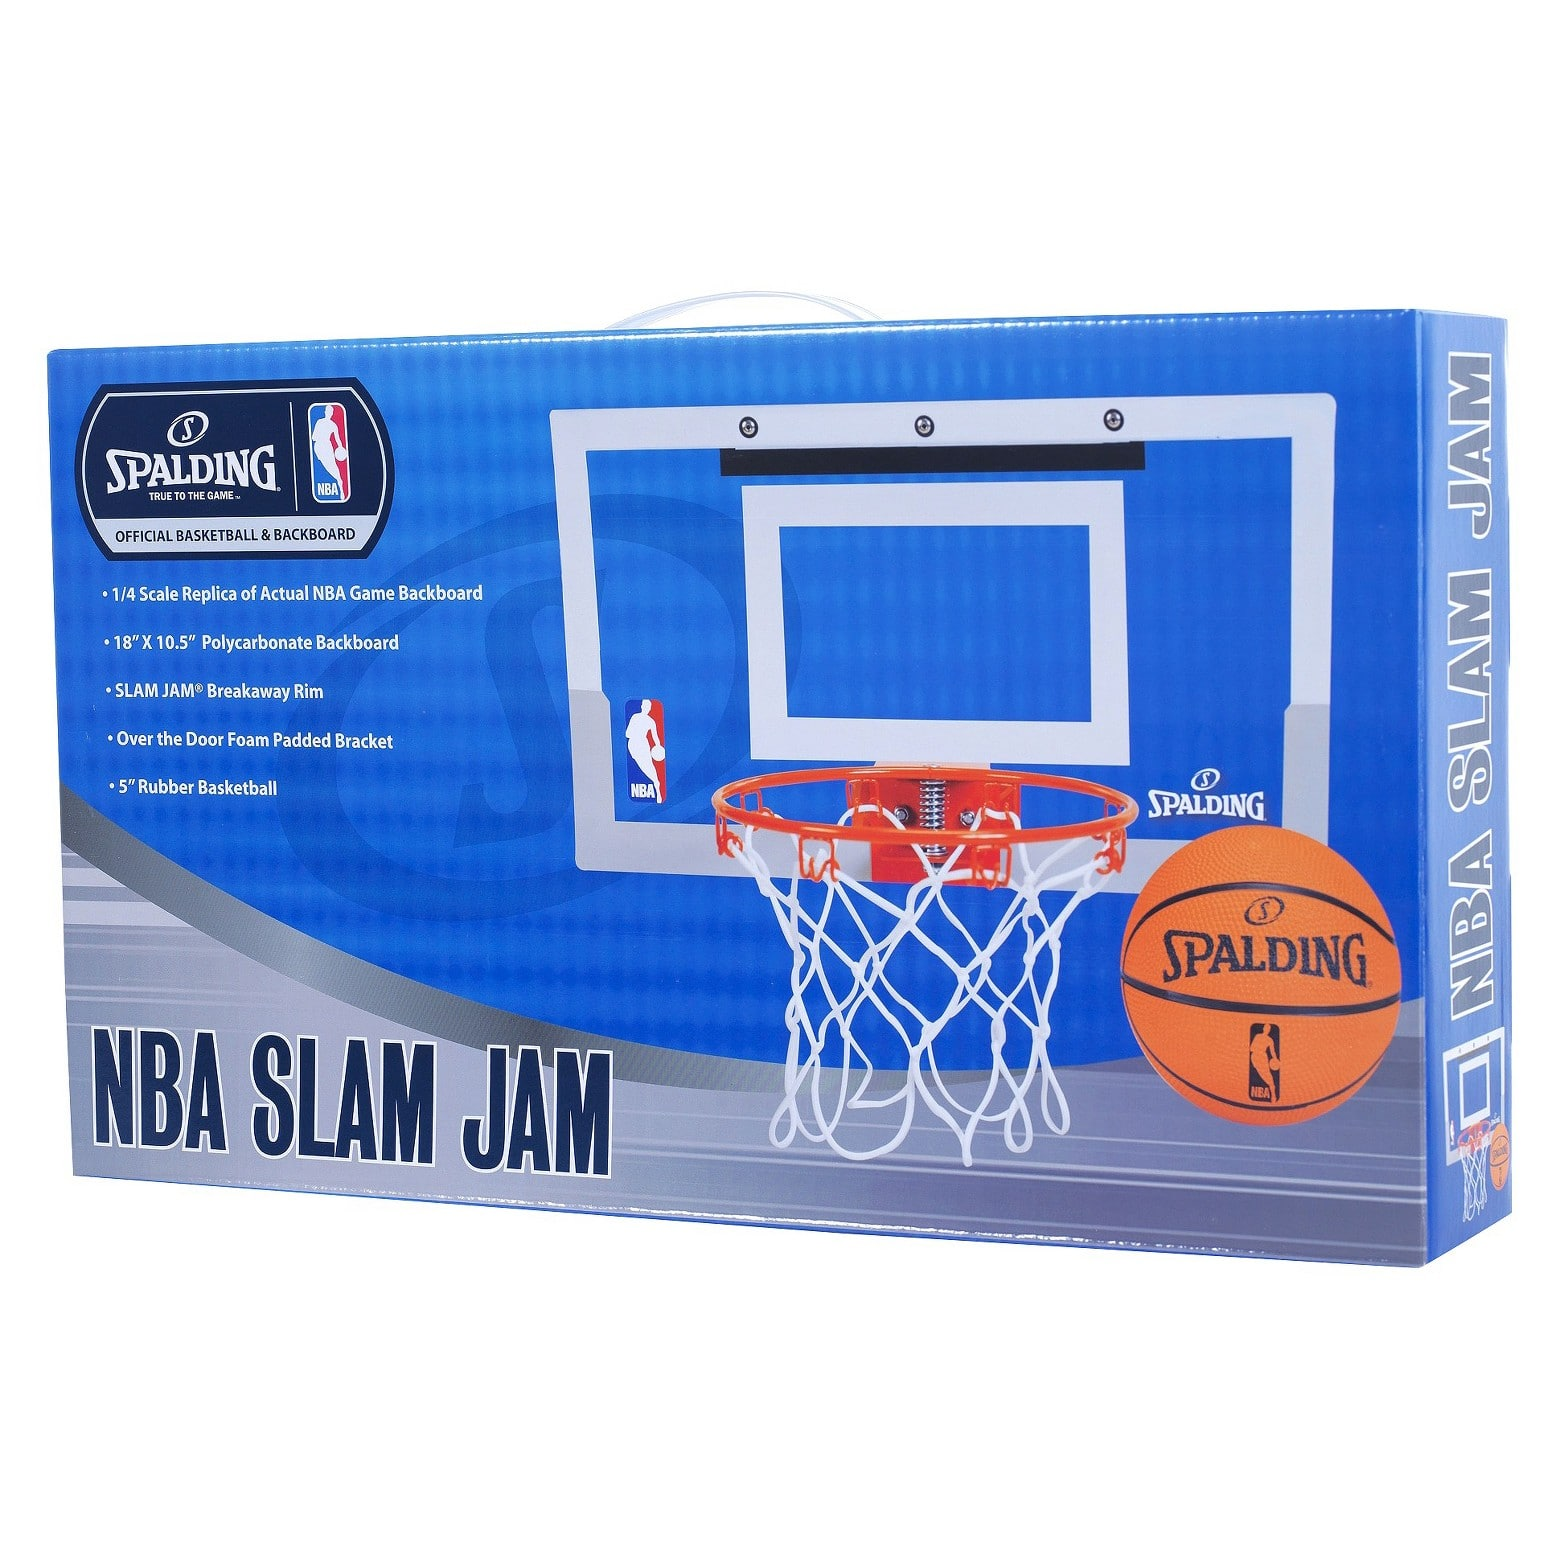 Spalding NBA Slam Jam Over-The-Door Team Edition Basketball Hoop $17.99 at Target + Free Shipping UNTIL DEC 23, 2017!